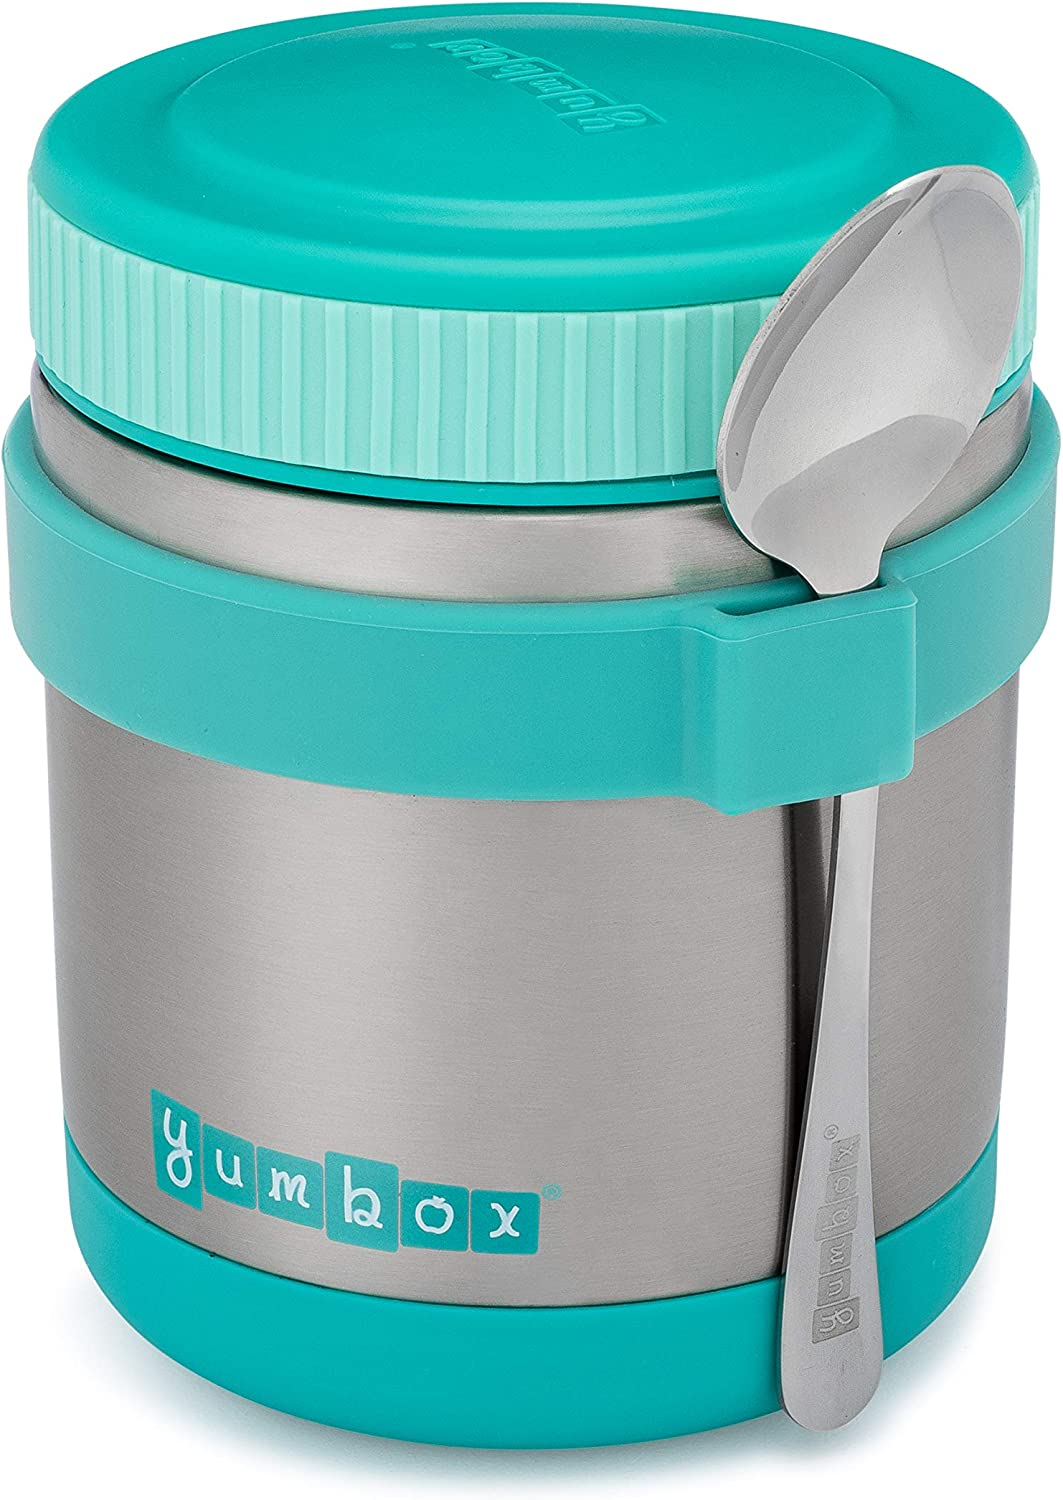 Yumbox Zuppa - Wide Mouth Thermal Food Jar 14 oz. (1.75 cups) with a removable utensil band - Triple Insulated Stainless Steel - Stays Hot 6 Hours or Cold for 12 Hours - Leak Proof-Caicos Aqua